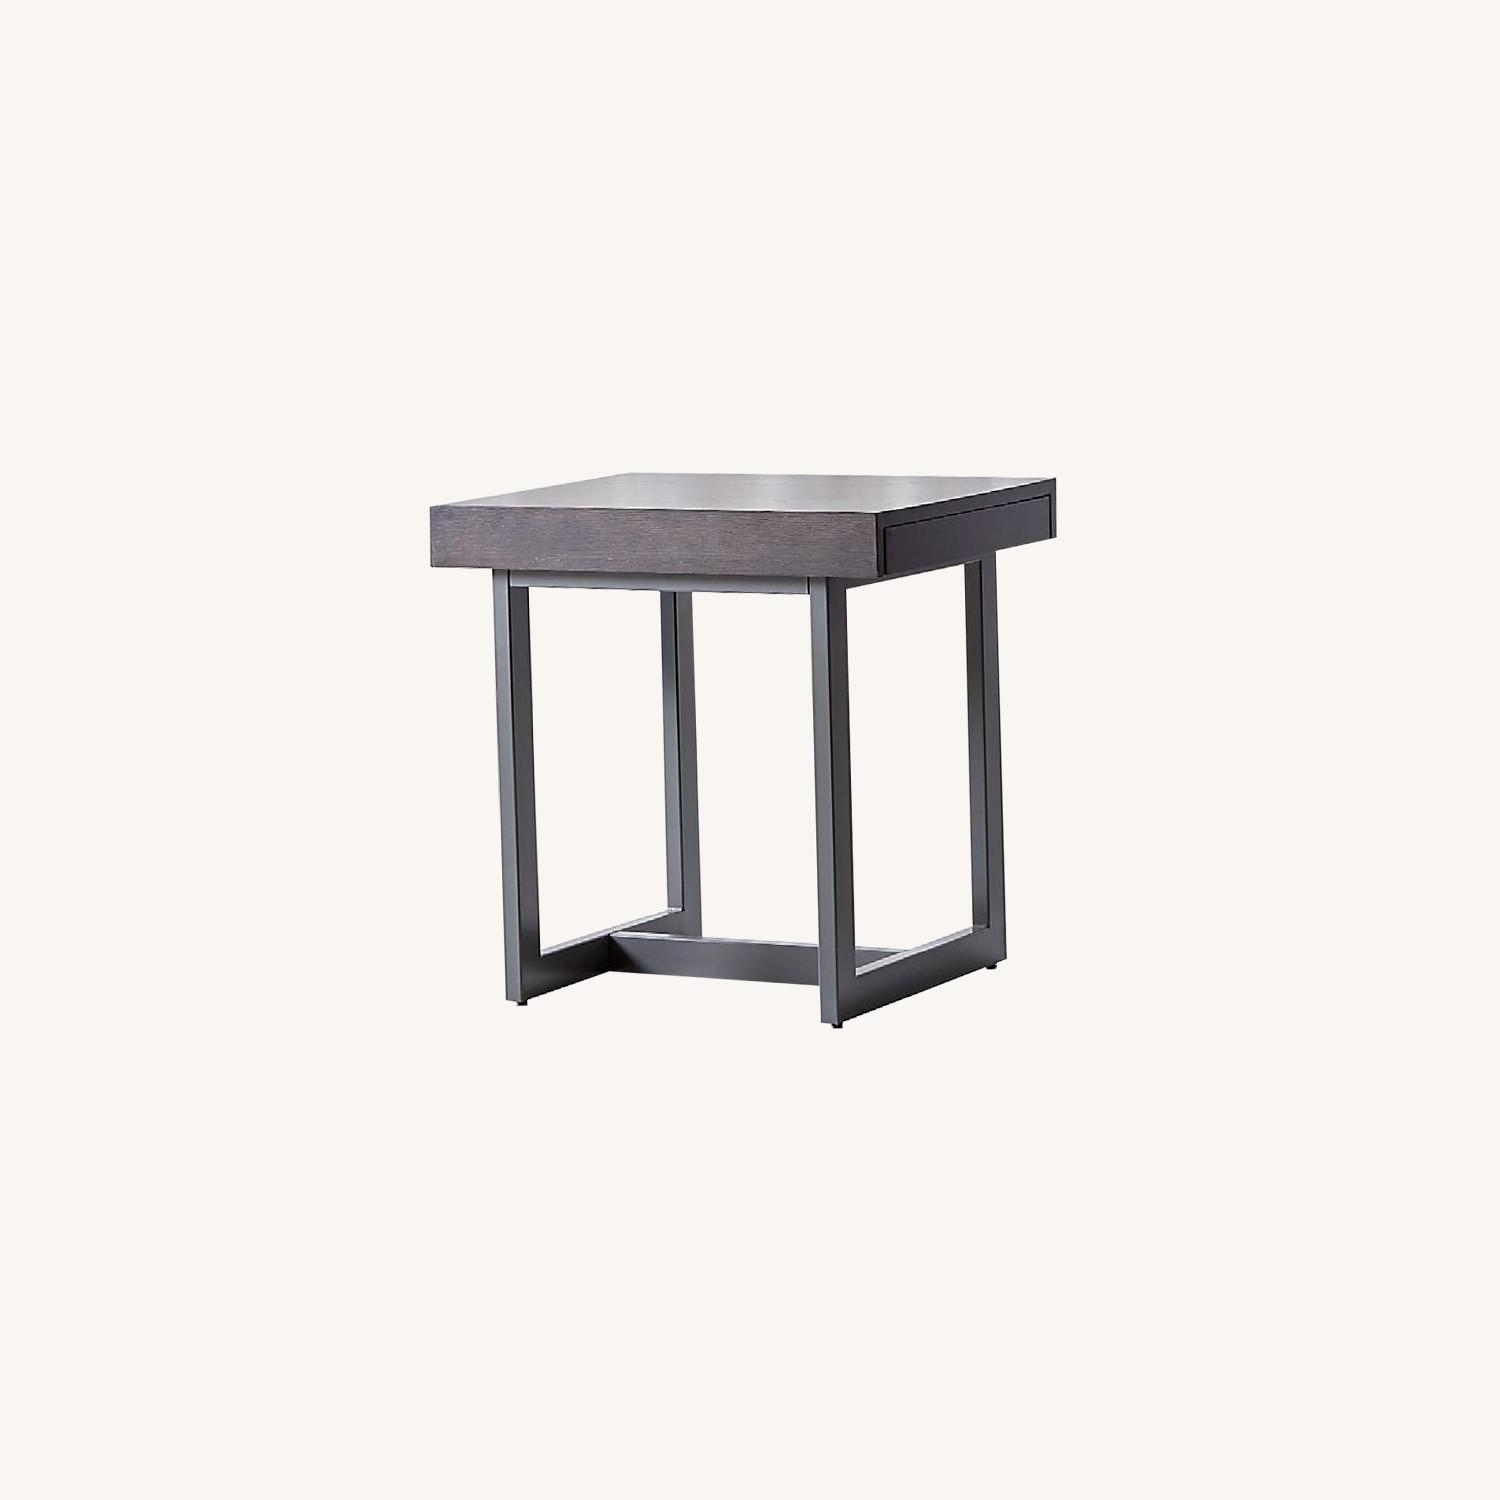 Crate & Barrel Archive End Table - image-0